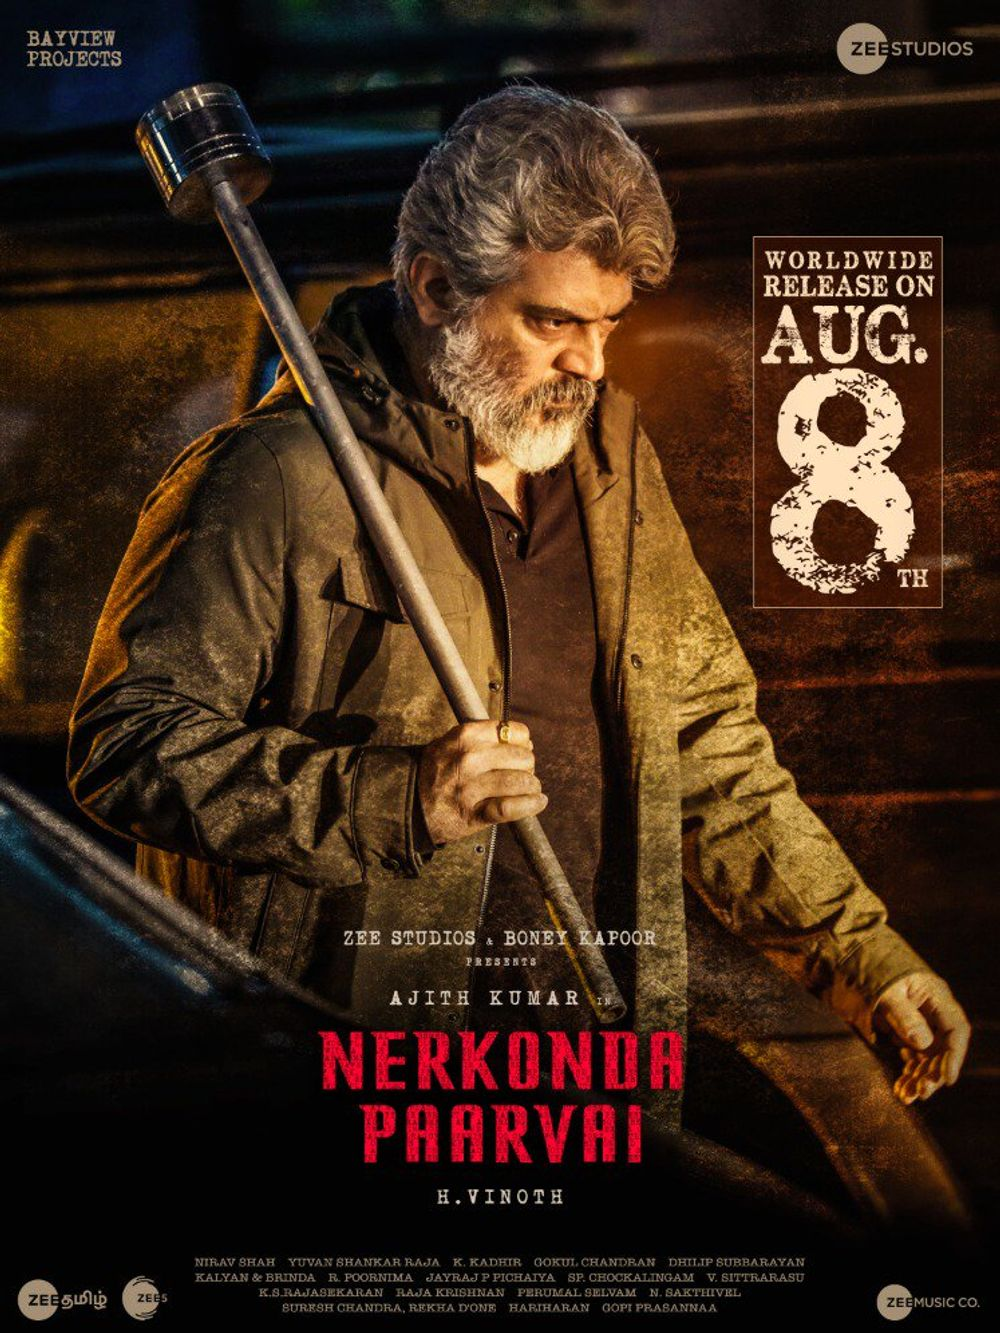 Nerkonda Paarvai (Maha Rakshak) 2019 Hindi Dual Audio 1080p UNCUT HDRip ESubs 2.5GB